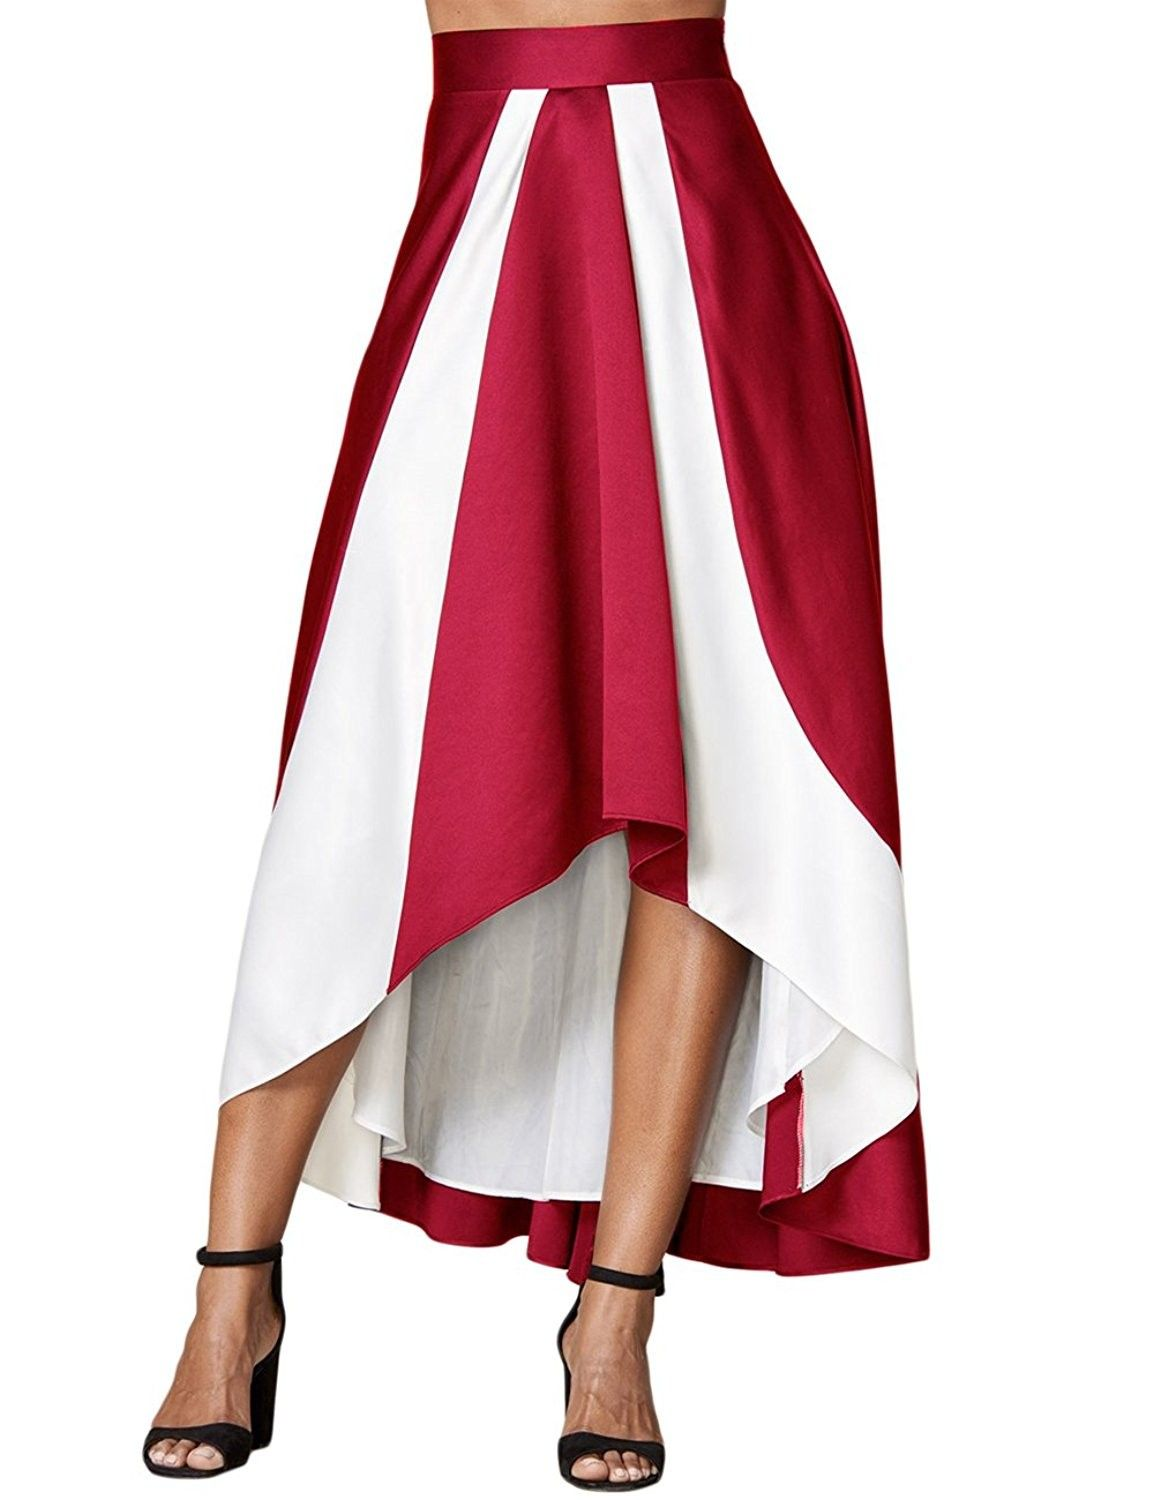 ae85b13d08 Women's Clothing, Skirts,Women's Plus Size A Line Party Maxi Skirt High  Waist High Low Pleated Skirts - Burgundy - C2187SOMWY6 #Fashion #Skirts # women ...